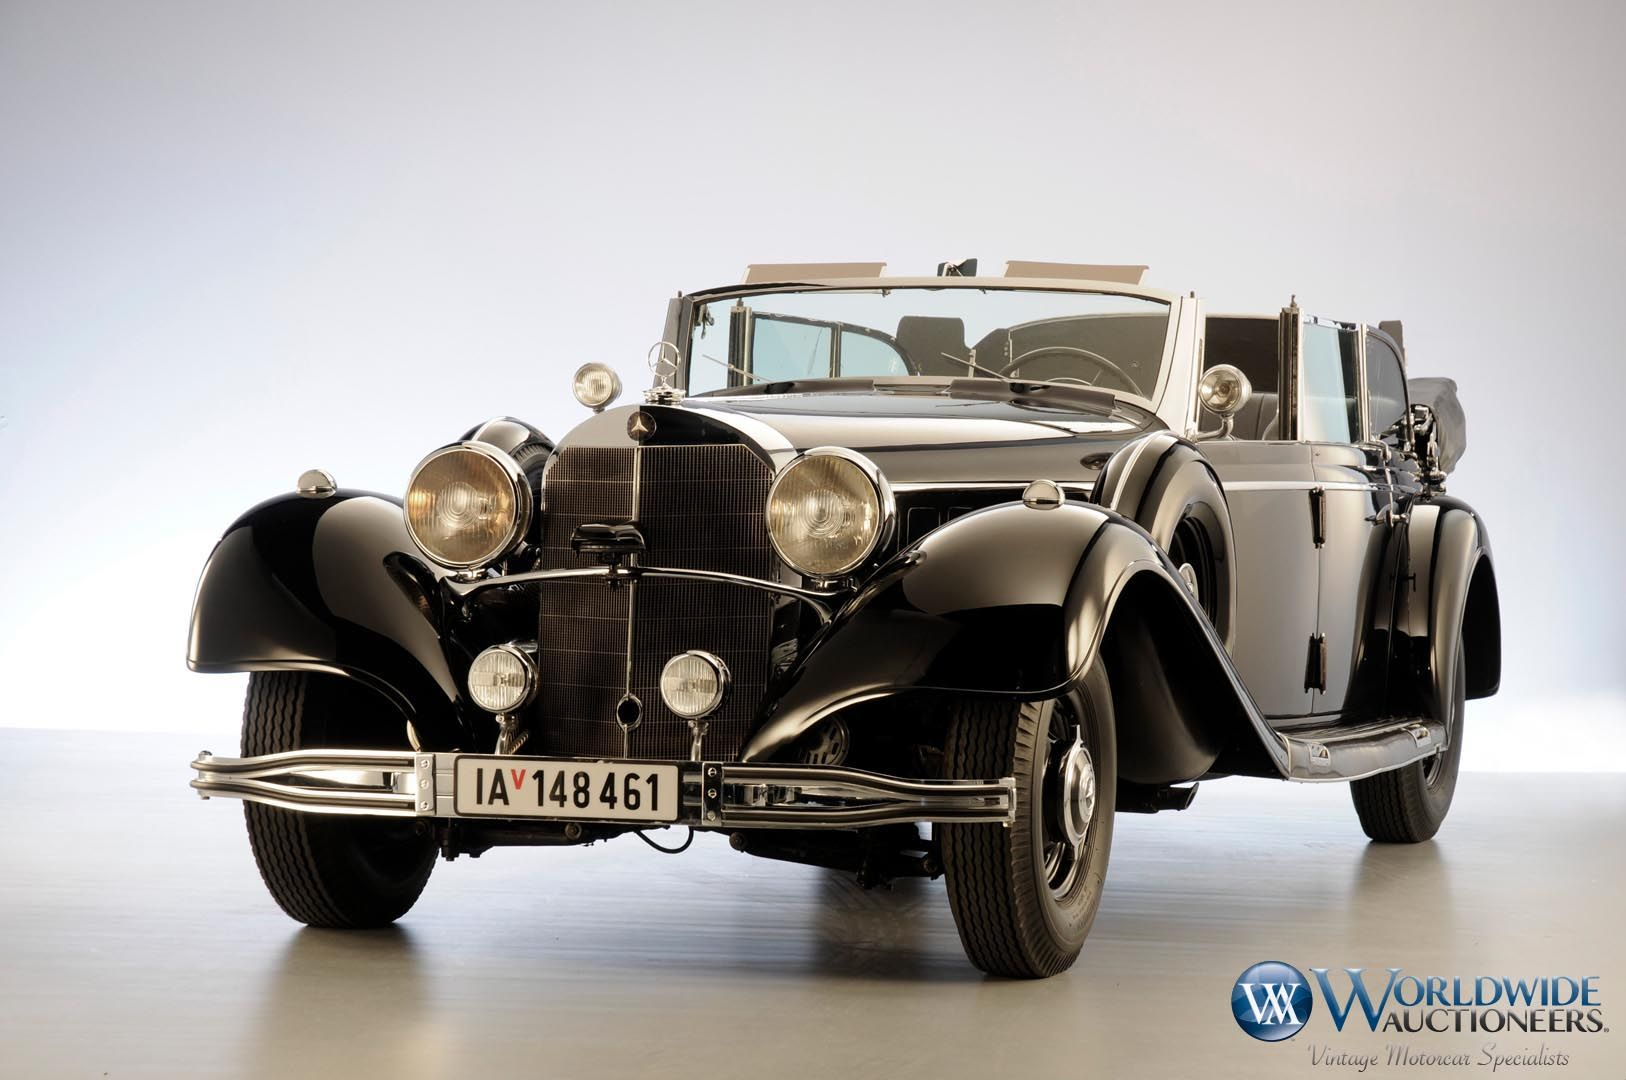 Pin by gordon reed on automobiles - german | Pinterest | Mercedes ...